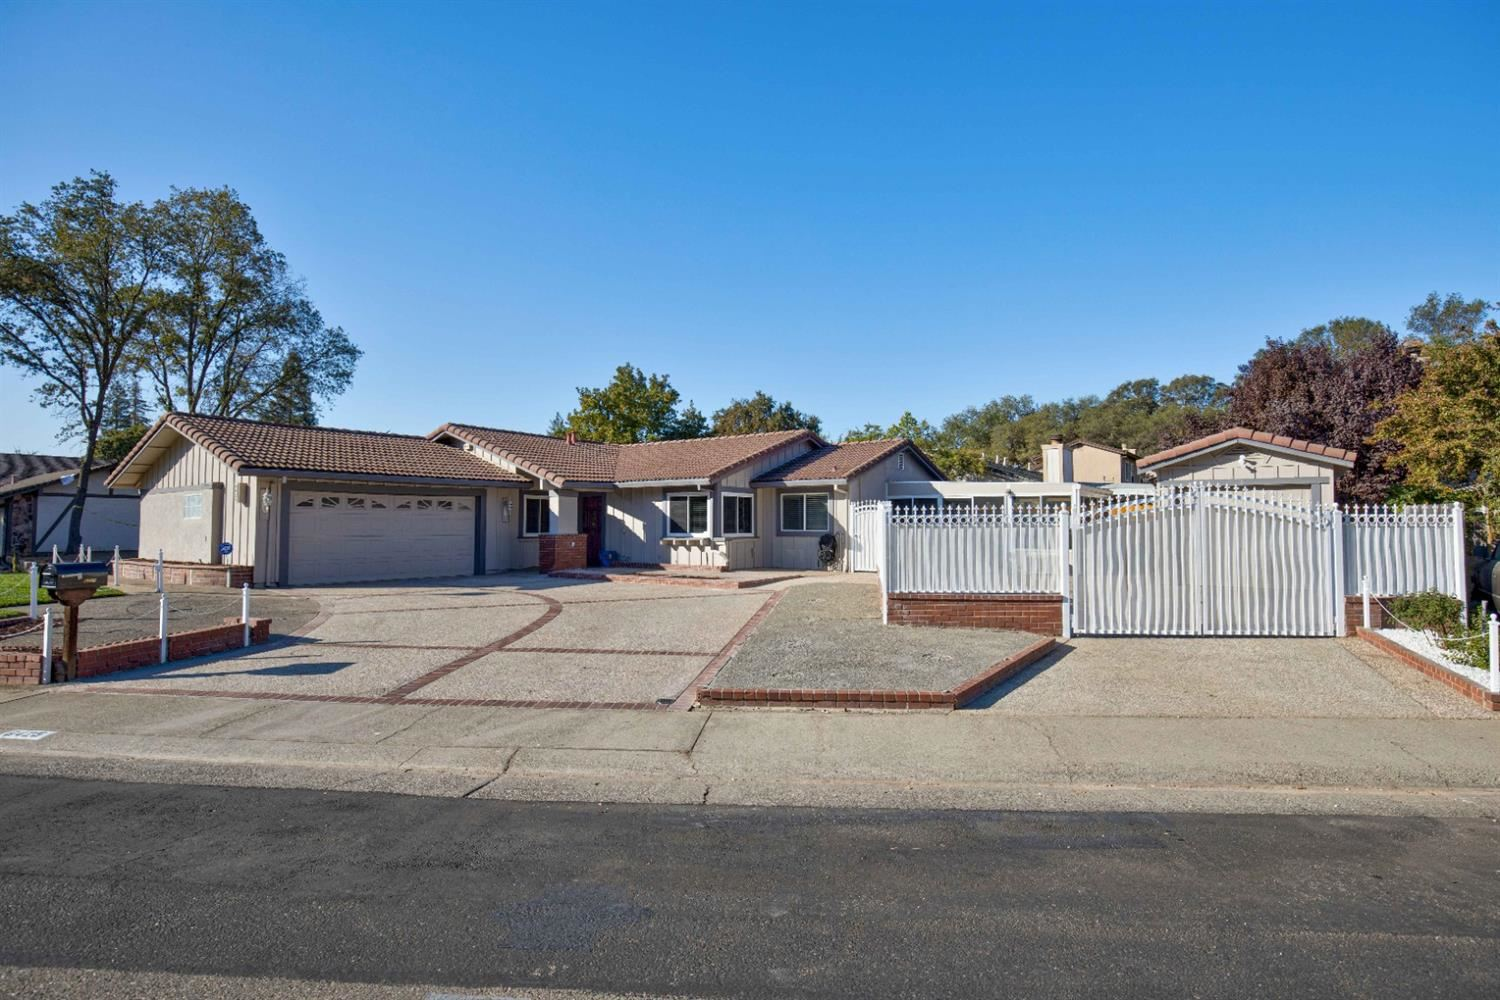 Photo of 6425 Indian River Drive, Citrus Heights, CA 95621 (MLS # 20063555)